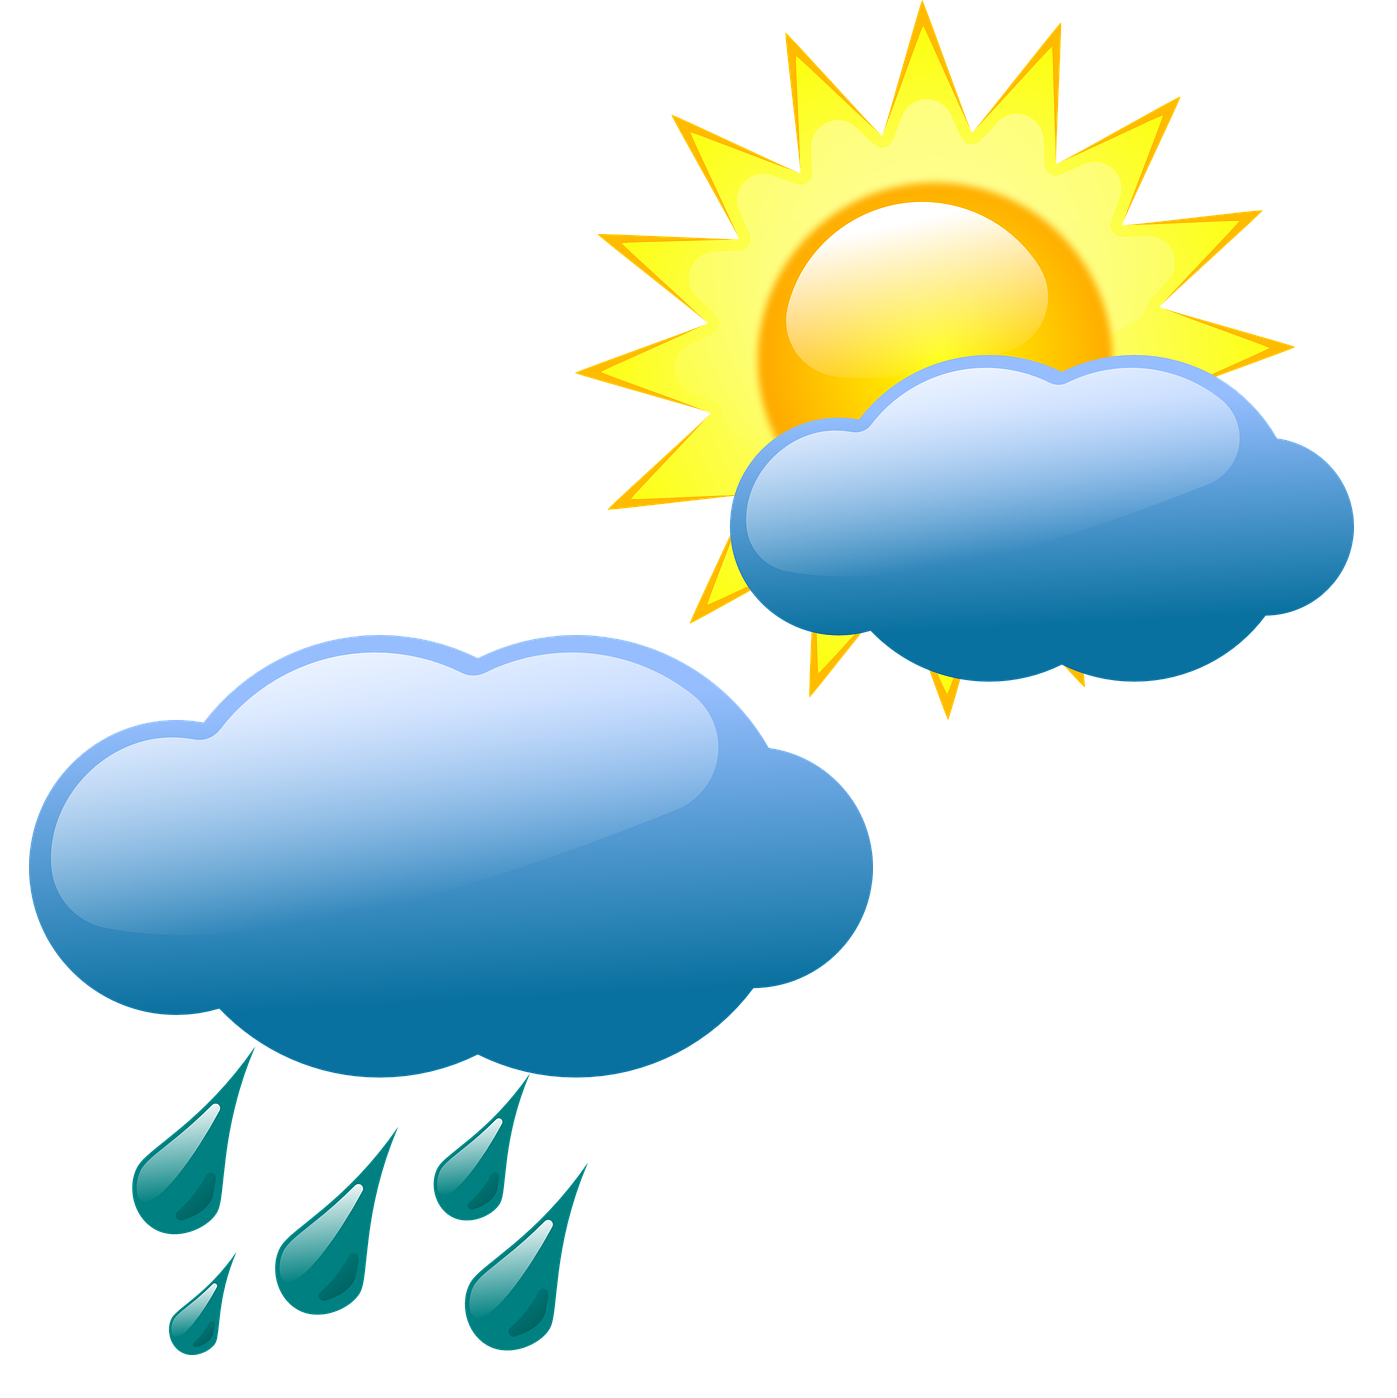 Forecasting symbol clip art. Sunny clipart weather nice